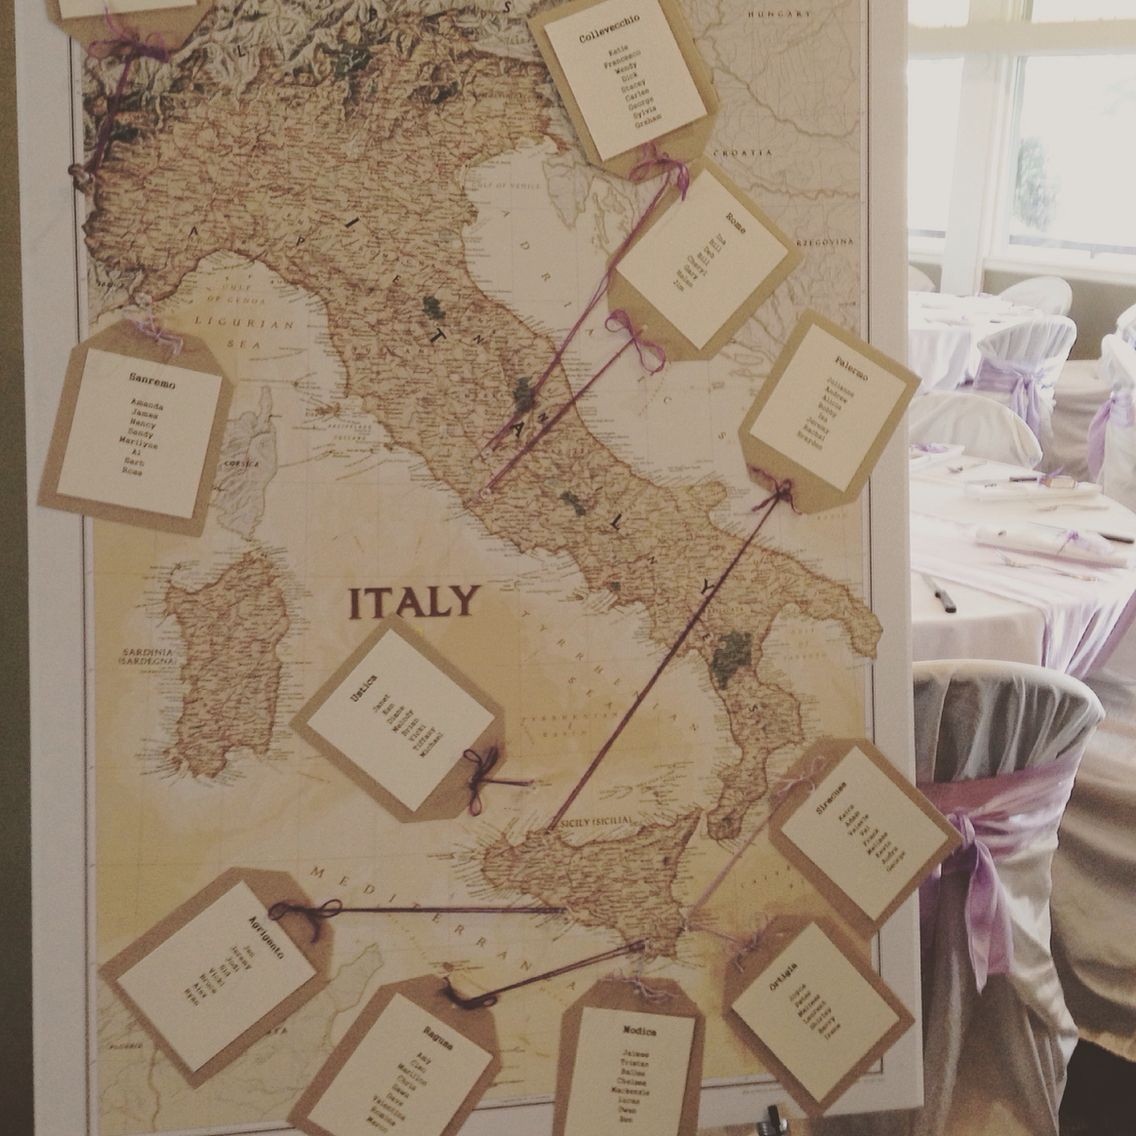 Seating Chart For Reception After Italian Destination Wedding Tables Were Named Places They Went